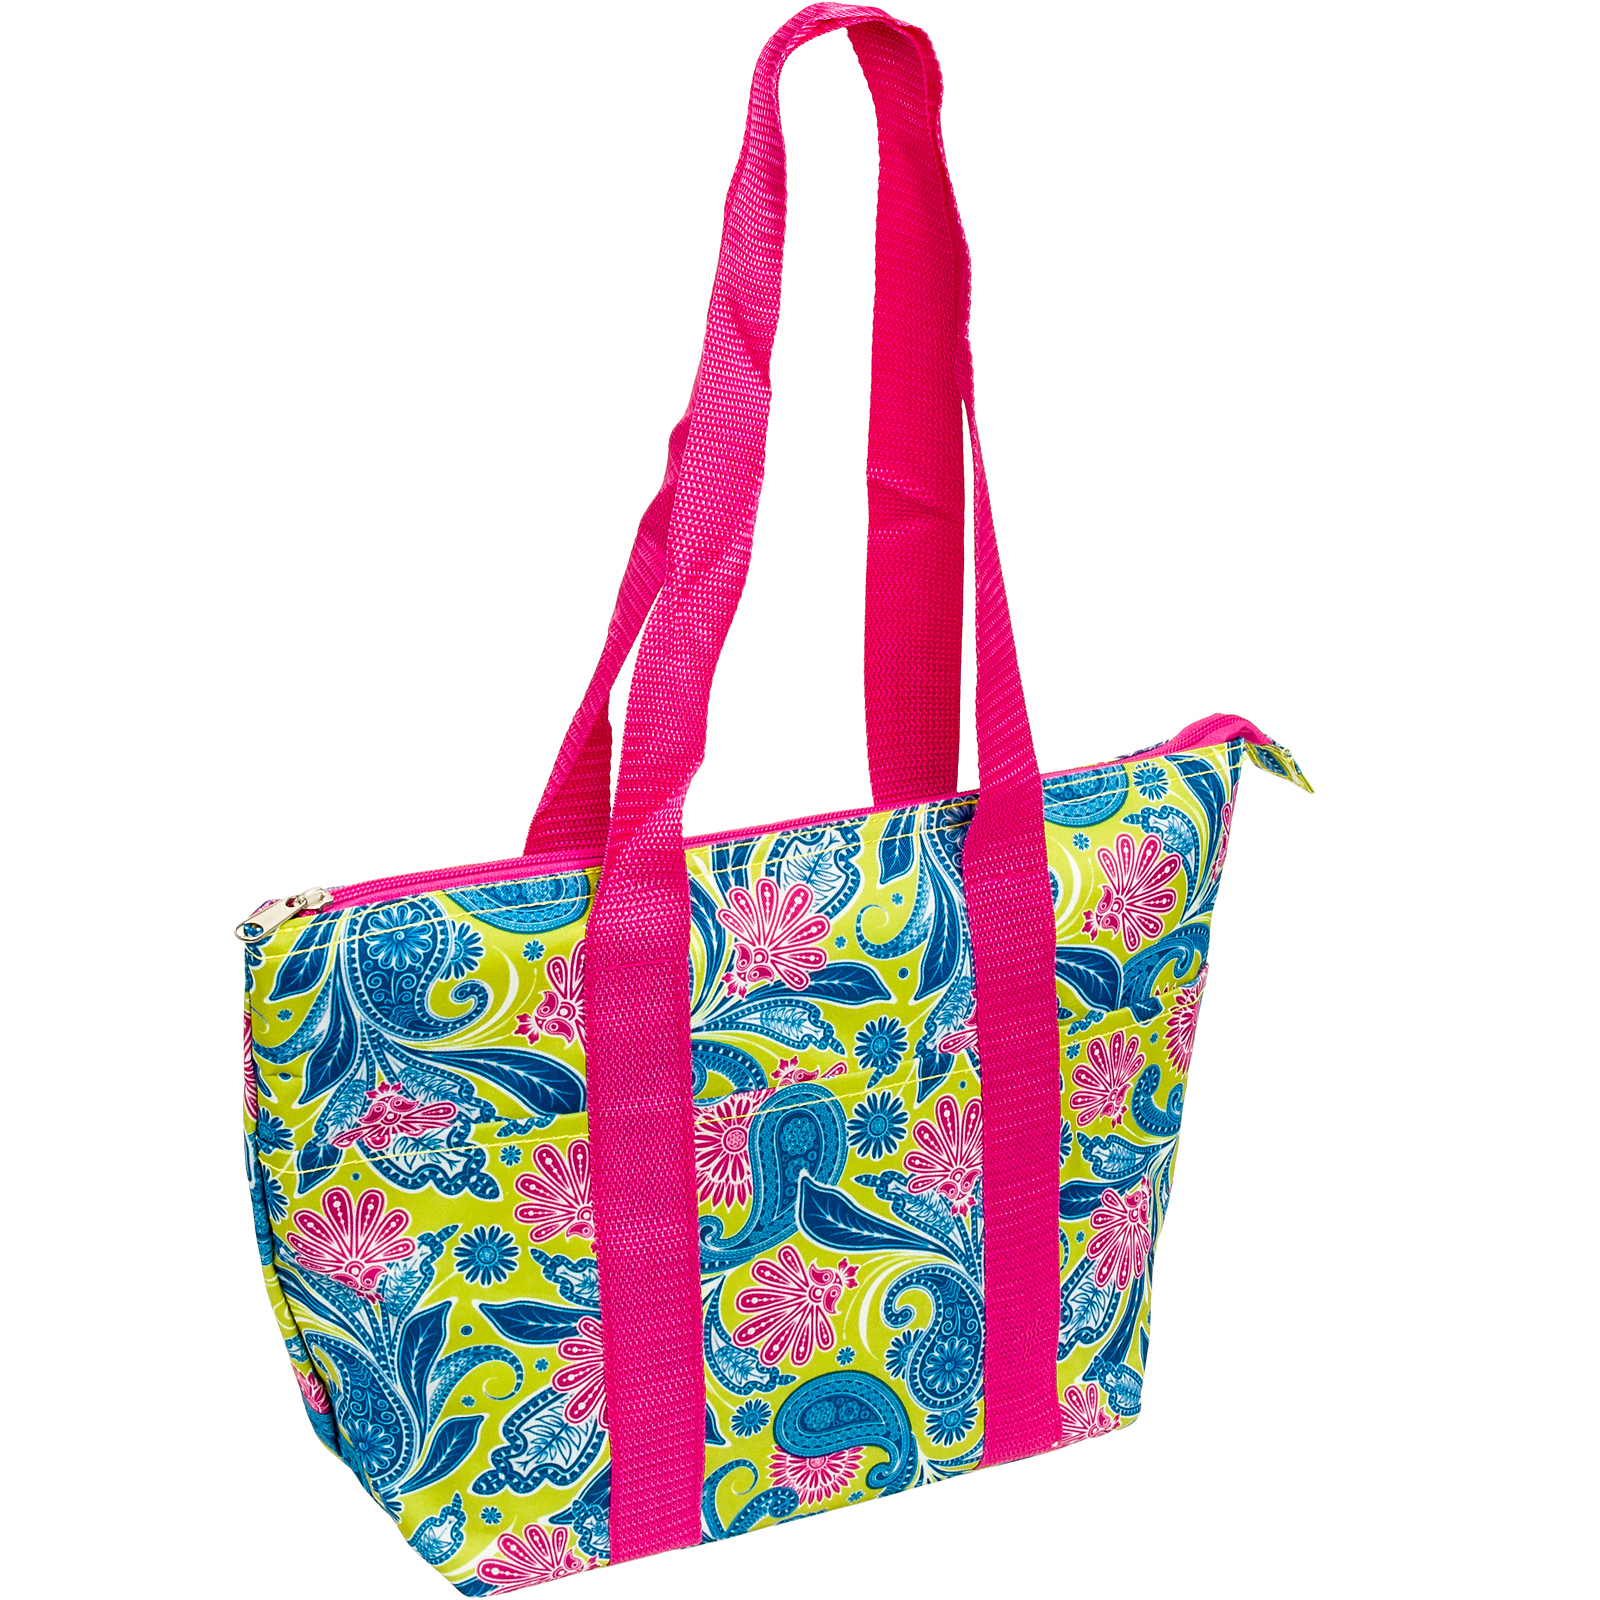 SilverHooks Nylon Insulated Lunch Tote Bag (Green/Pink/Blue Paisley Floral) - Walmart.com